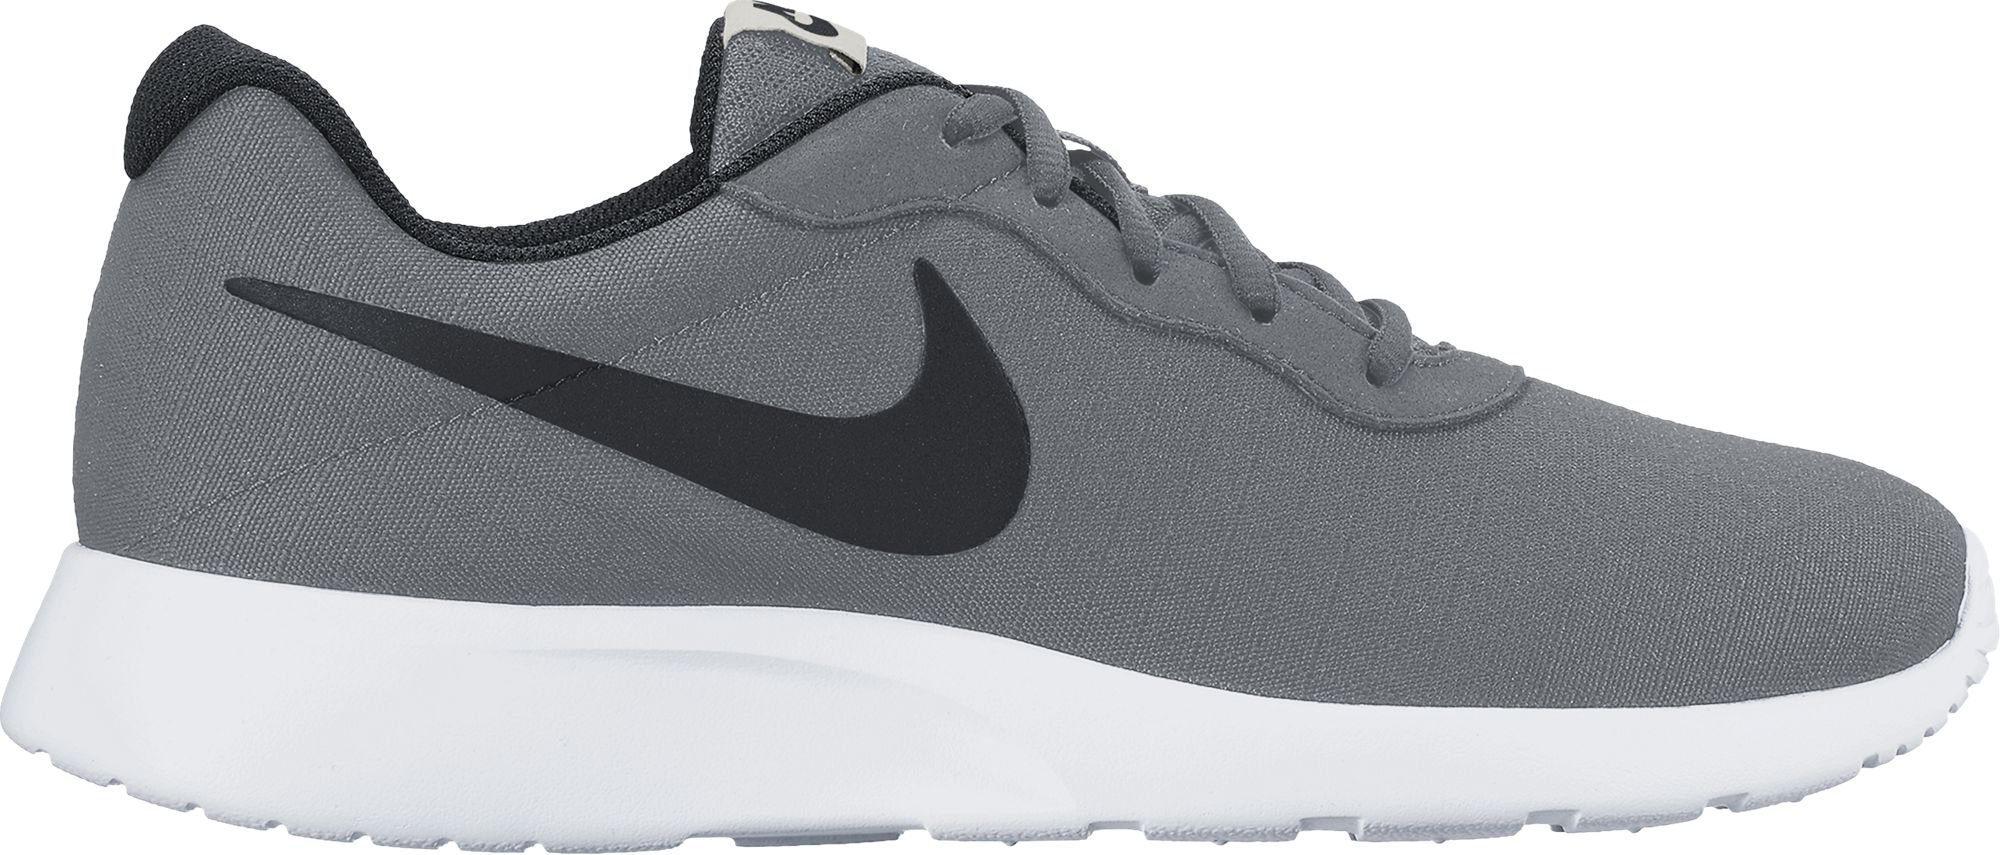 NIKE Men's Tanjun Premium, Grey Black White Light Bone, 10 D-Medium by NIKE